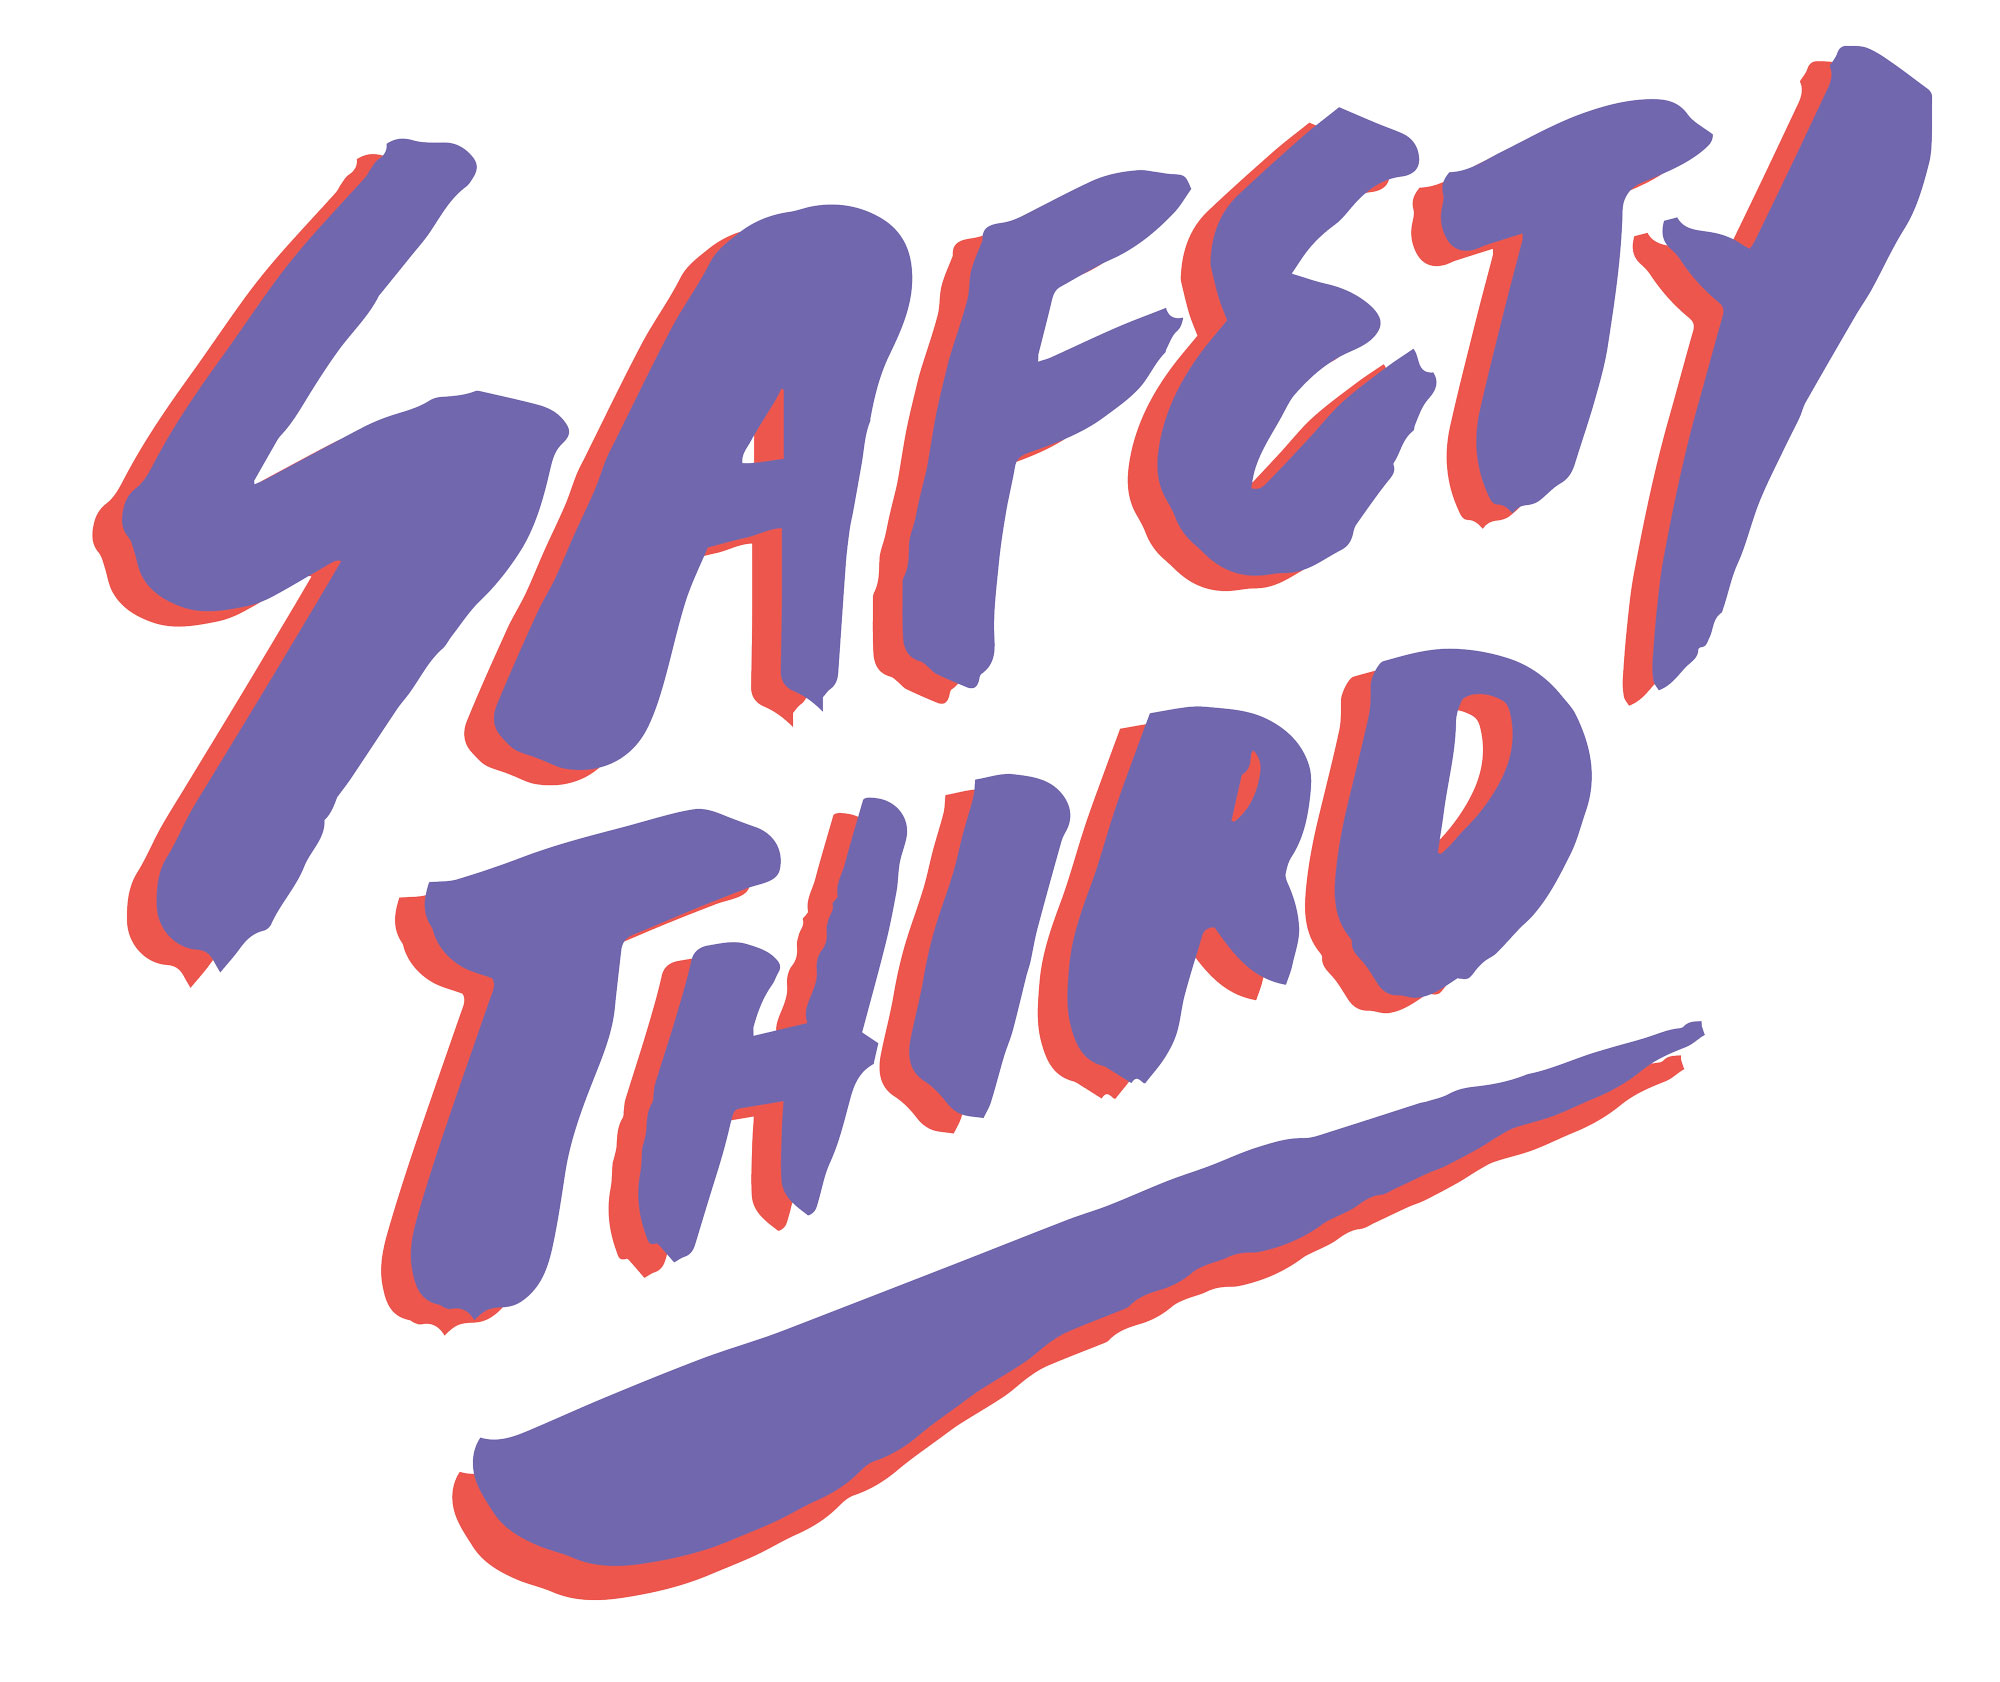 Recorded an interview with base jumper Chris McNamara for Safety Third, an adventure podcast from Ducttape then Beer